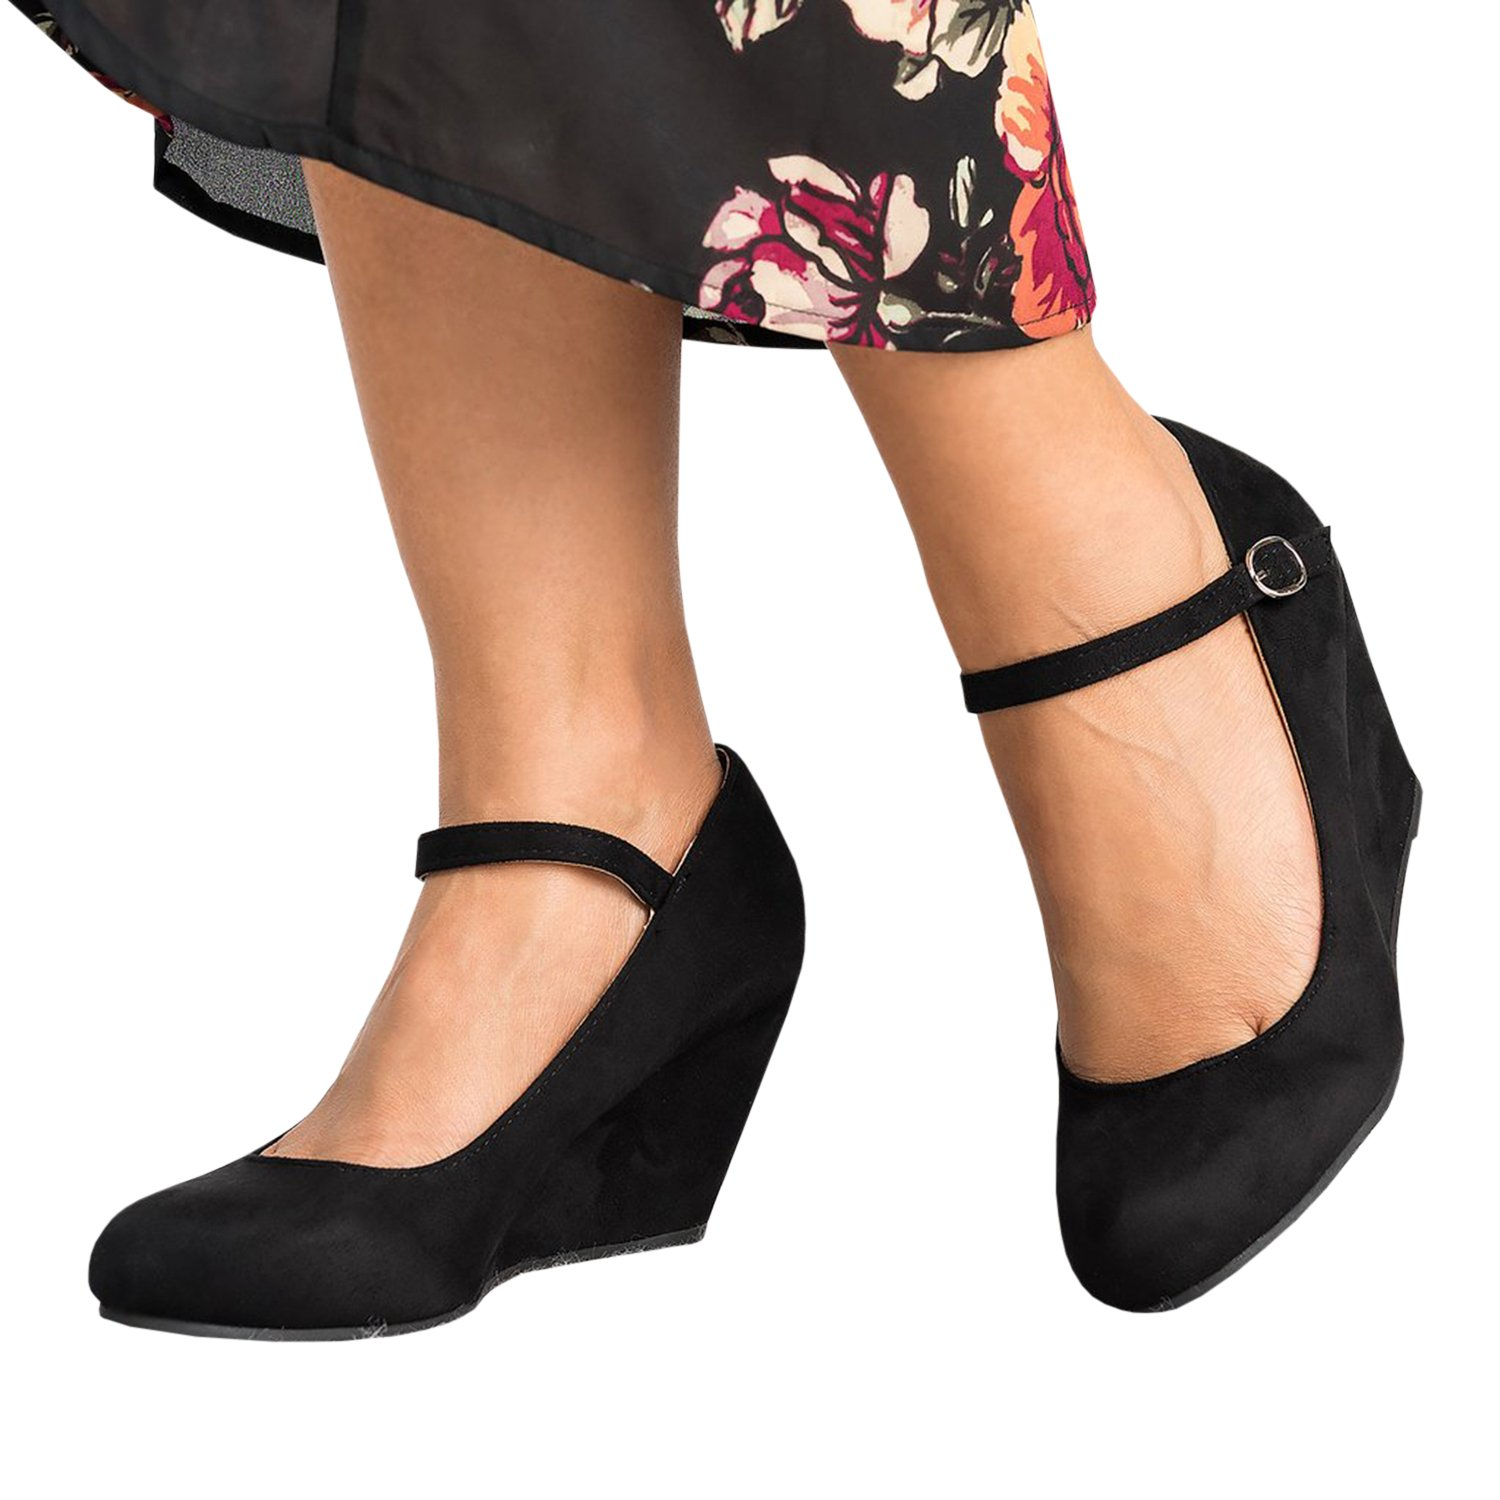 Syktkmx Womens Ankle Strap Mary Jane Wedges Pumps Closed Toe Spring Heeled Office Shoes Black 10 B(M) US by Syktkmx